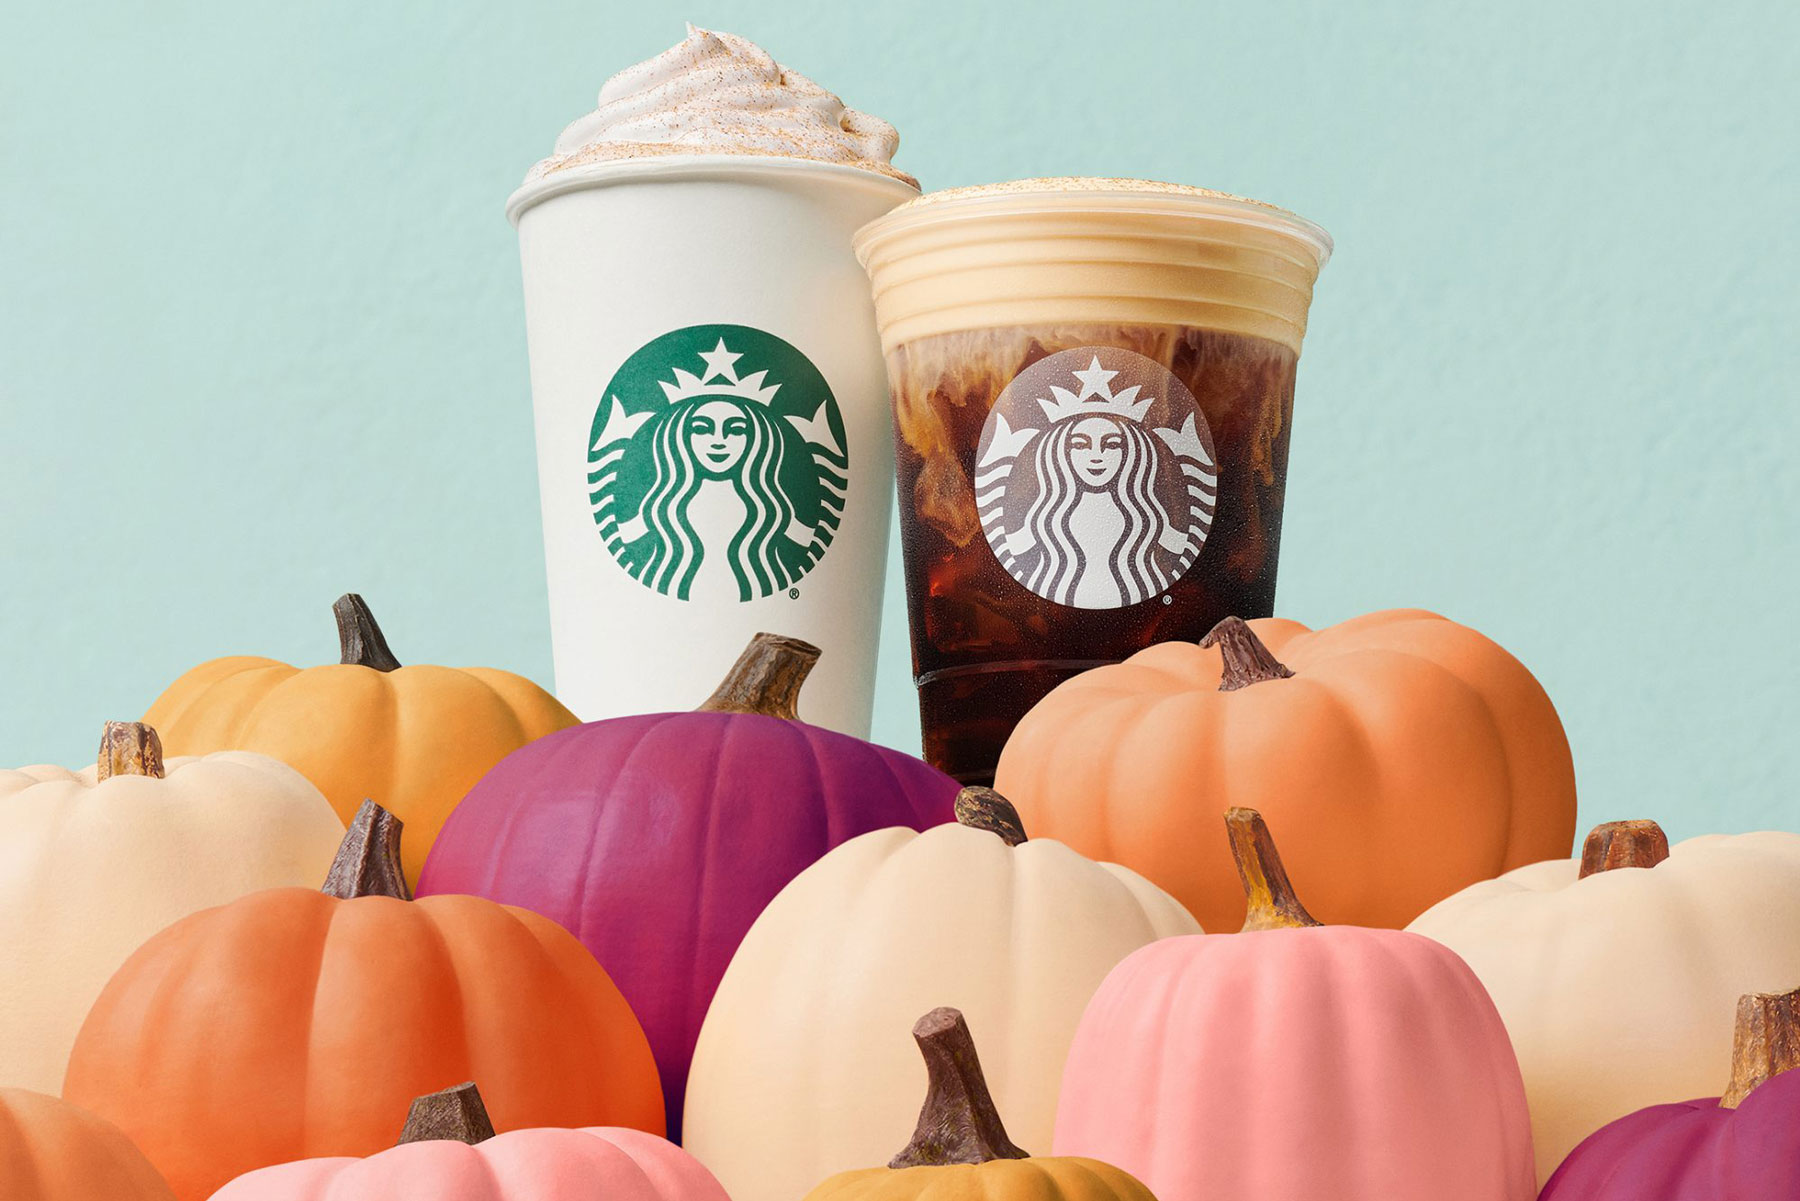 Starbucks latte and cold brew atop a pile of pumpkins